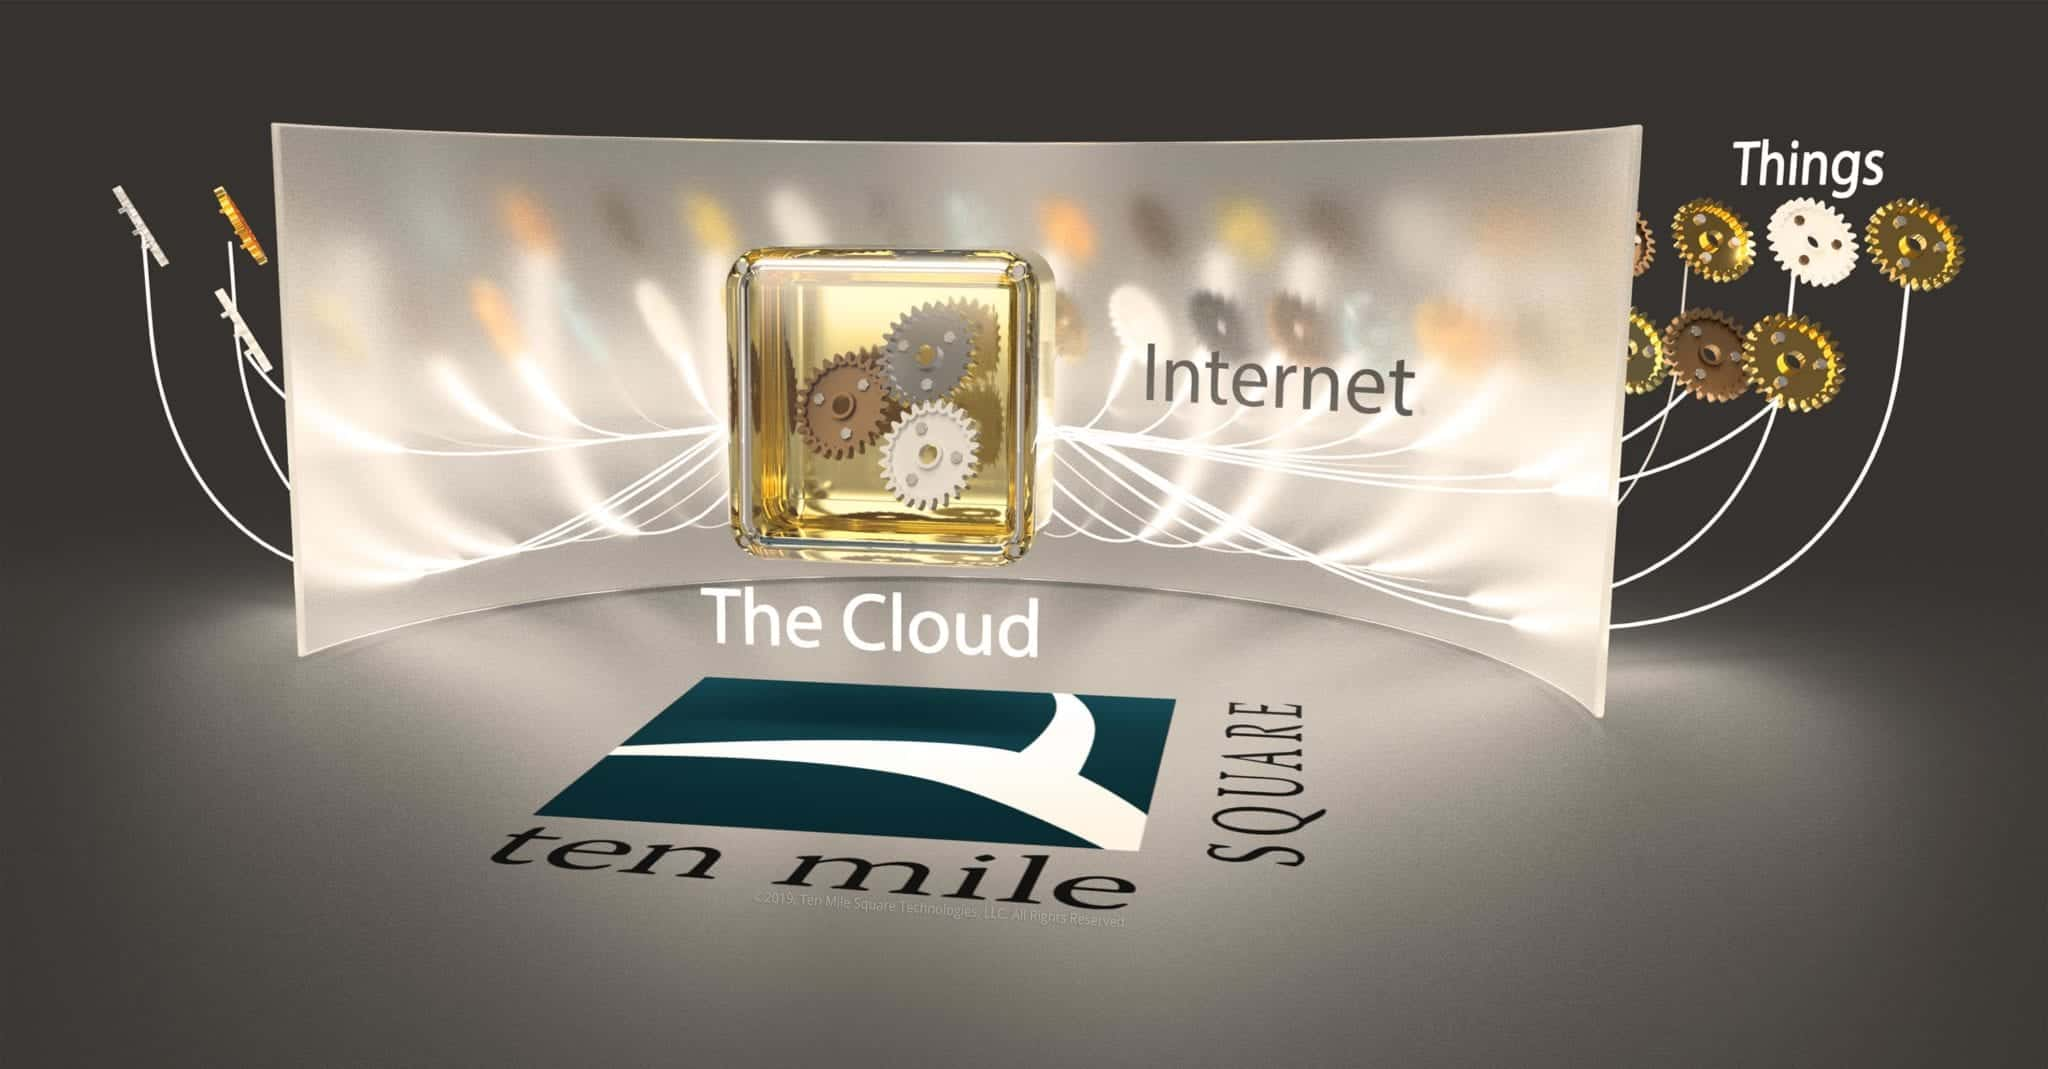 Stylized surrealist image depicting the cloud as a golden safe with gears floating in it, the internet as a frosted glass wall, and things as gears floating beyond the wall.